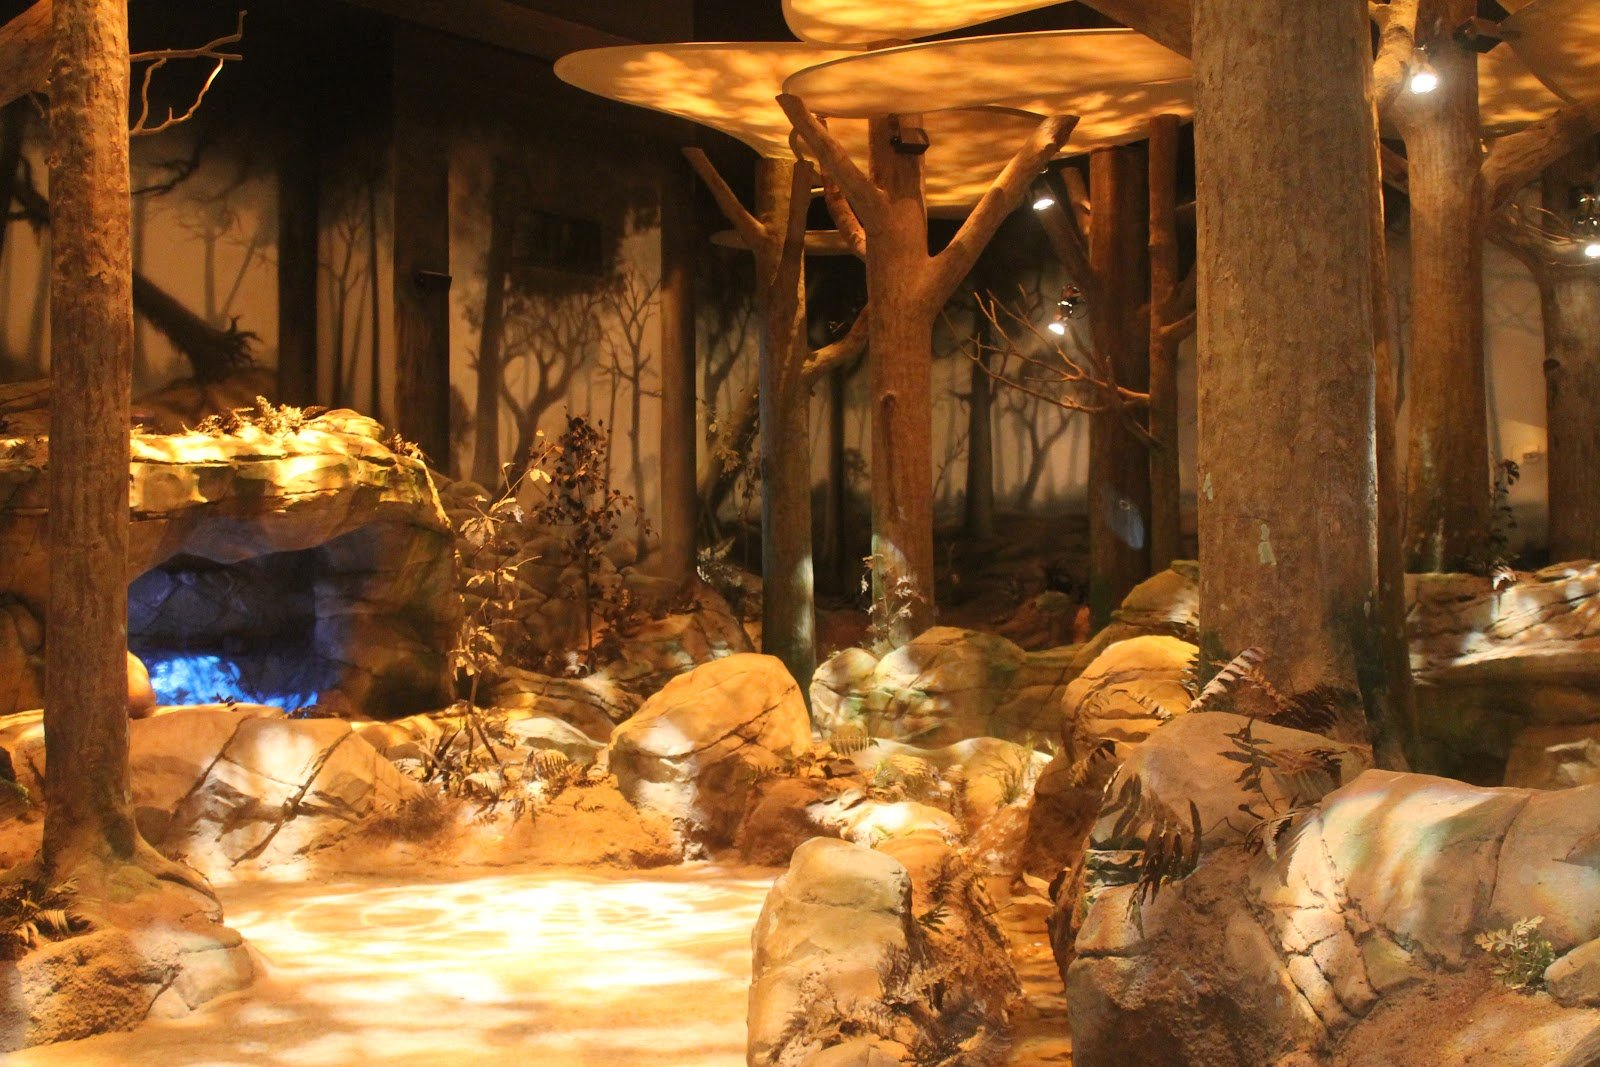 Spirit Forest exhibit (image from American Attractions)